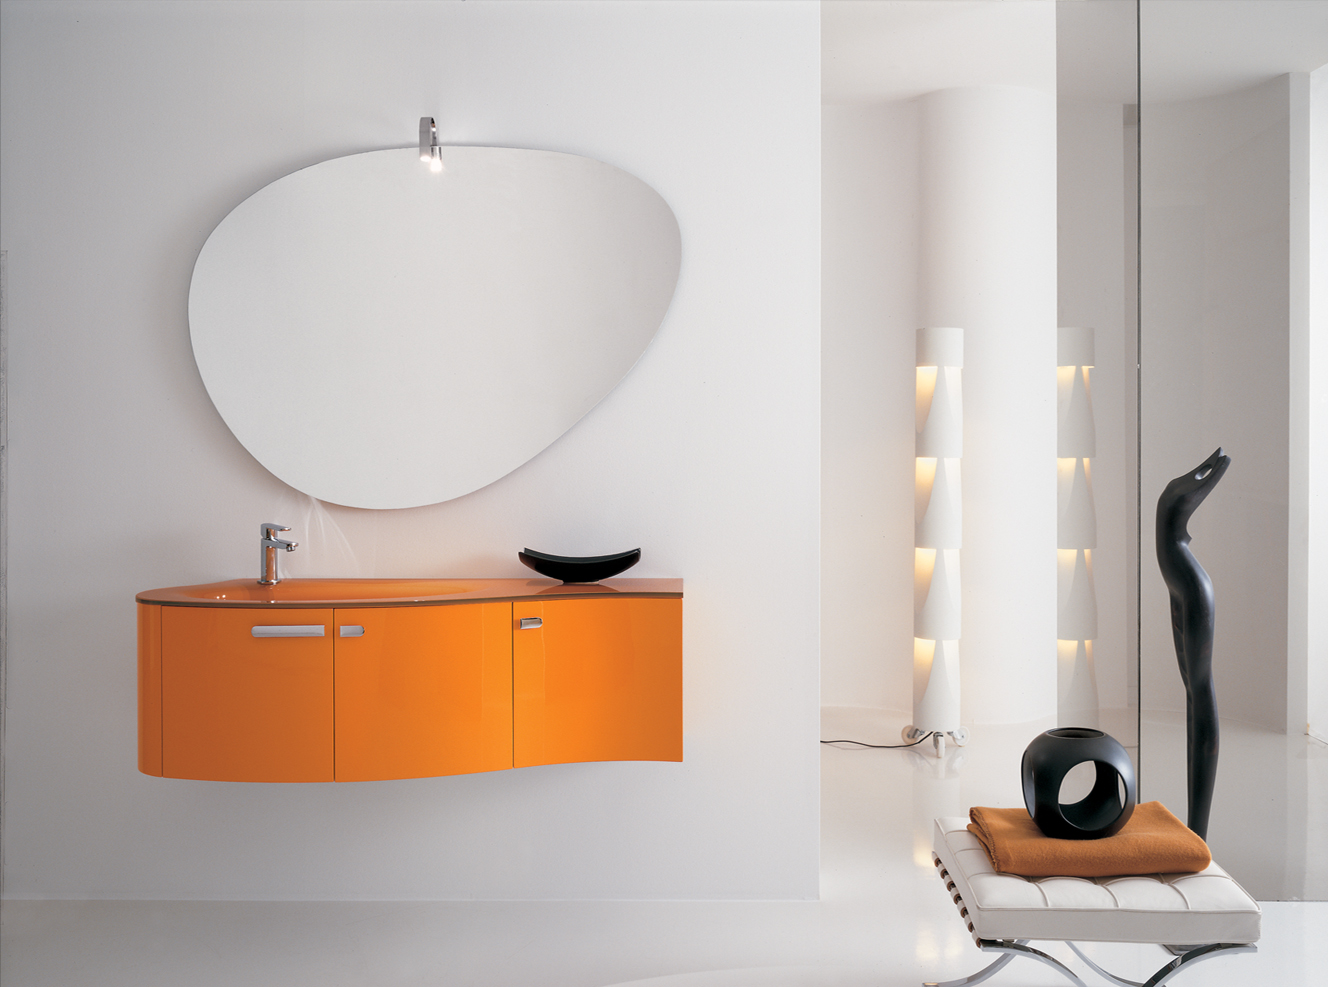 luna-orange-bathroom